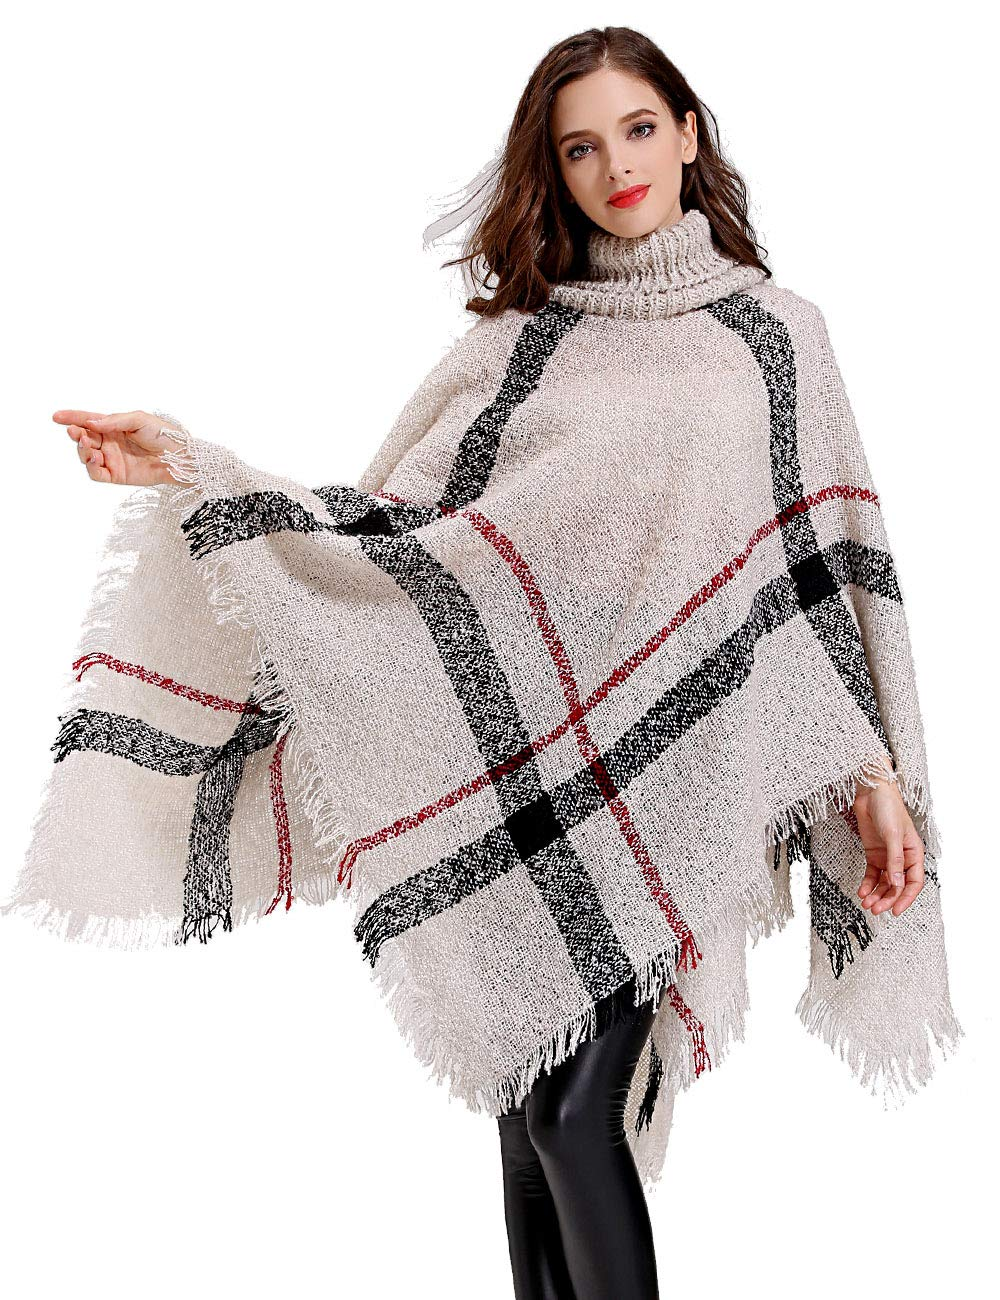 HITOP Womens Dress Ponchos, Boho Loose Tassel Plaid Poncho Turtleneck Jumper Knit Oversized Pullover Sweater Tops for Women Beige by HITOP